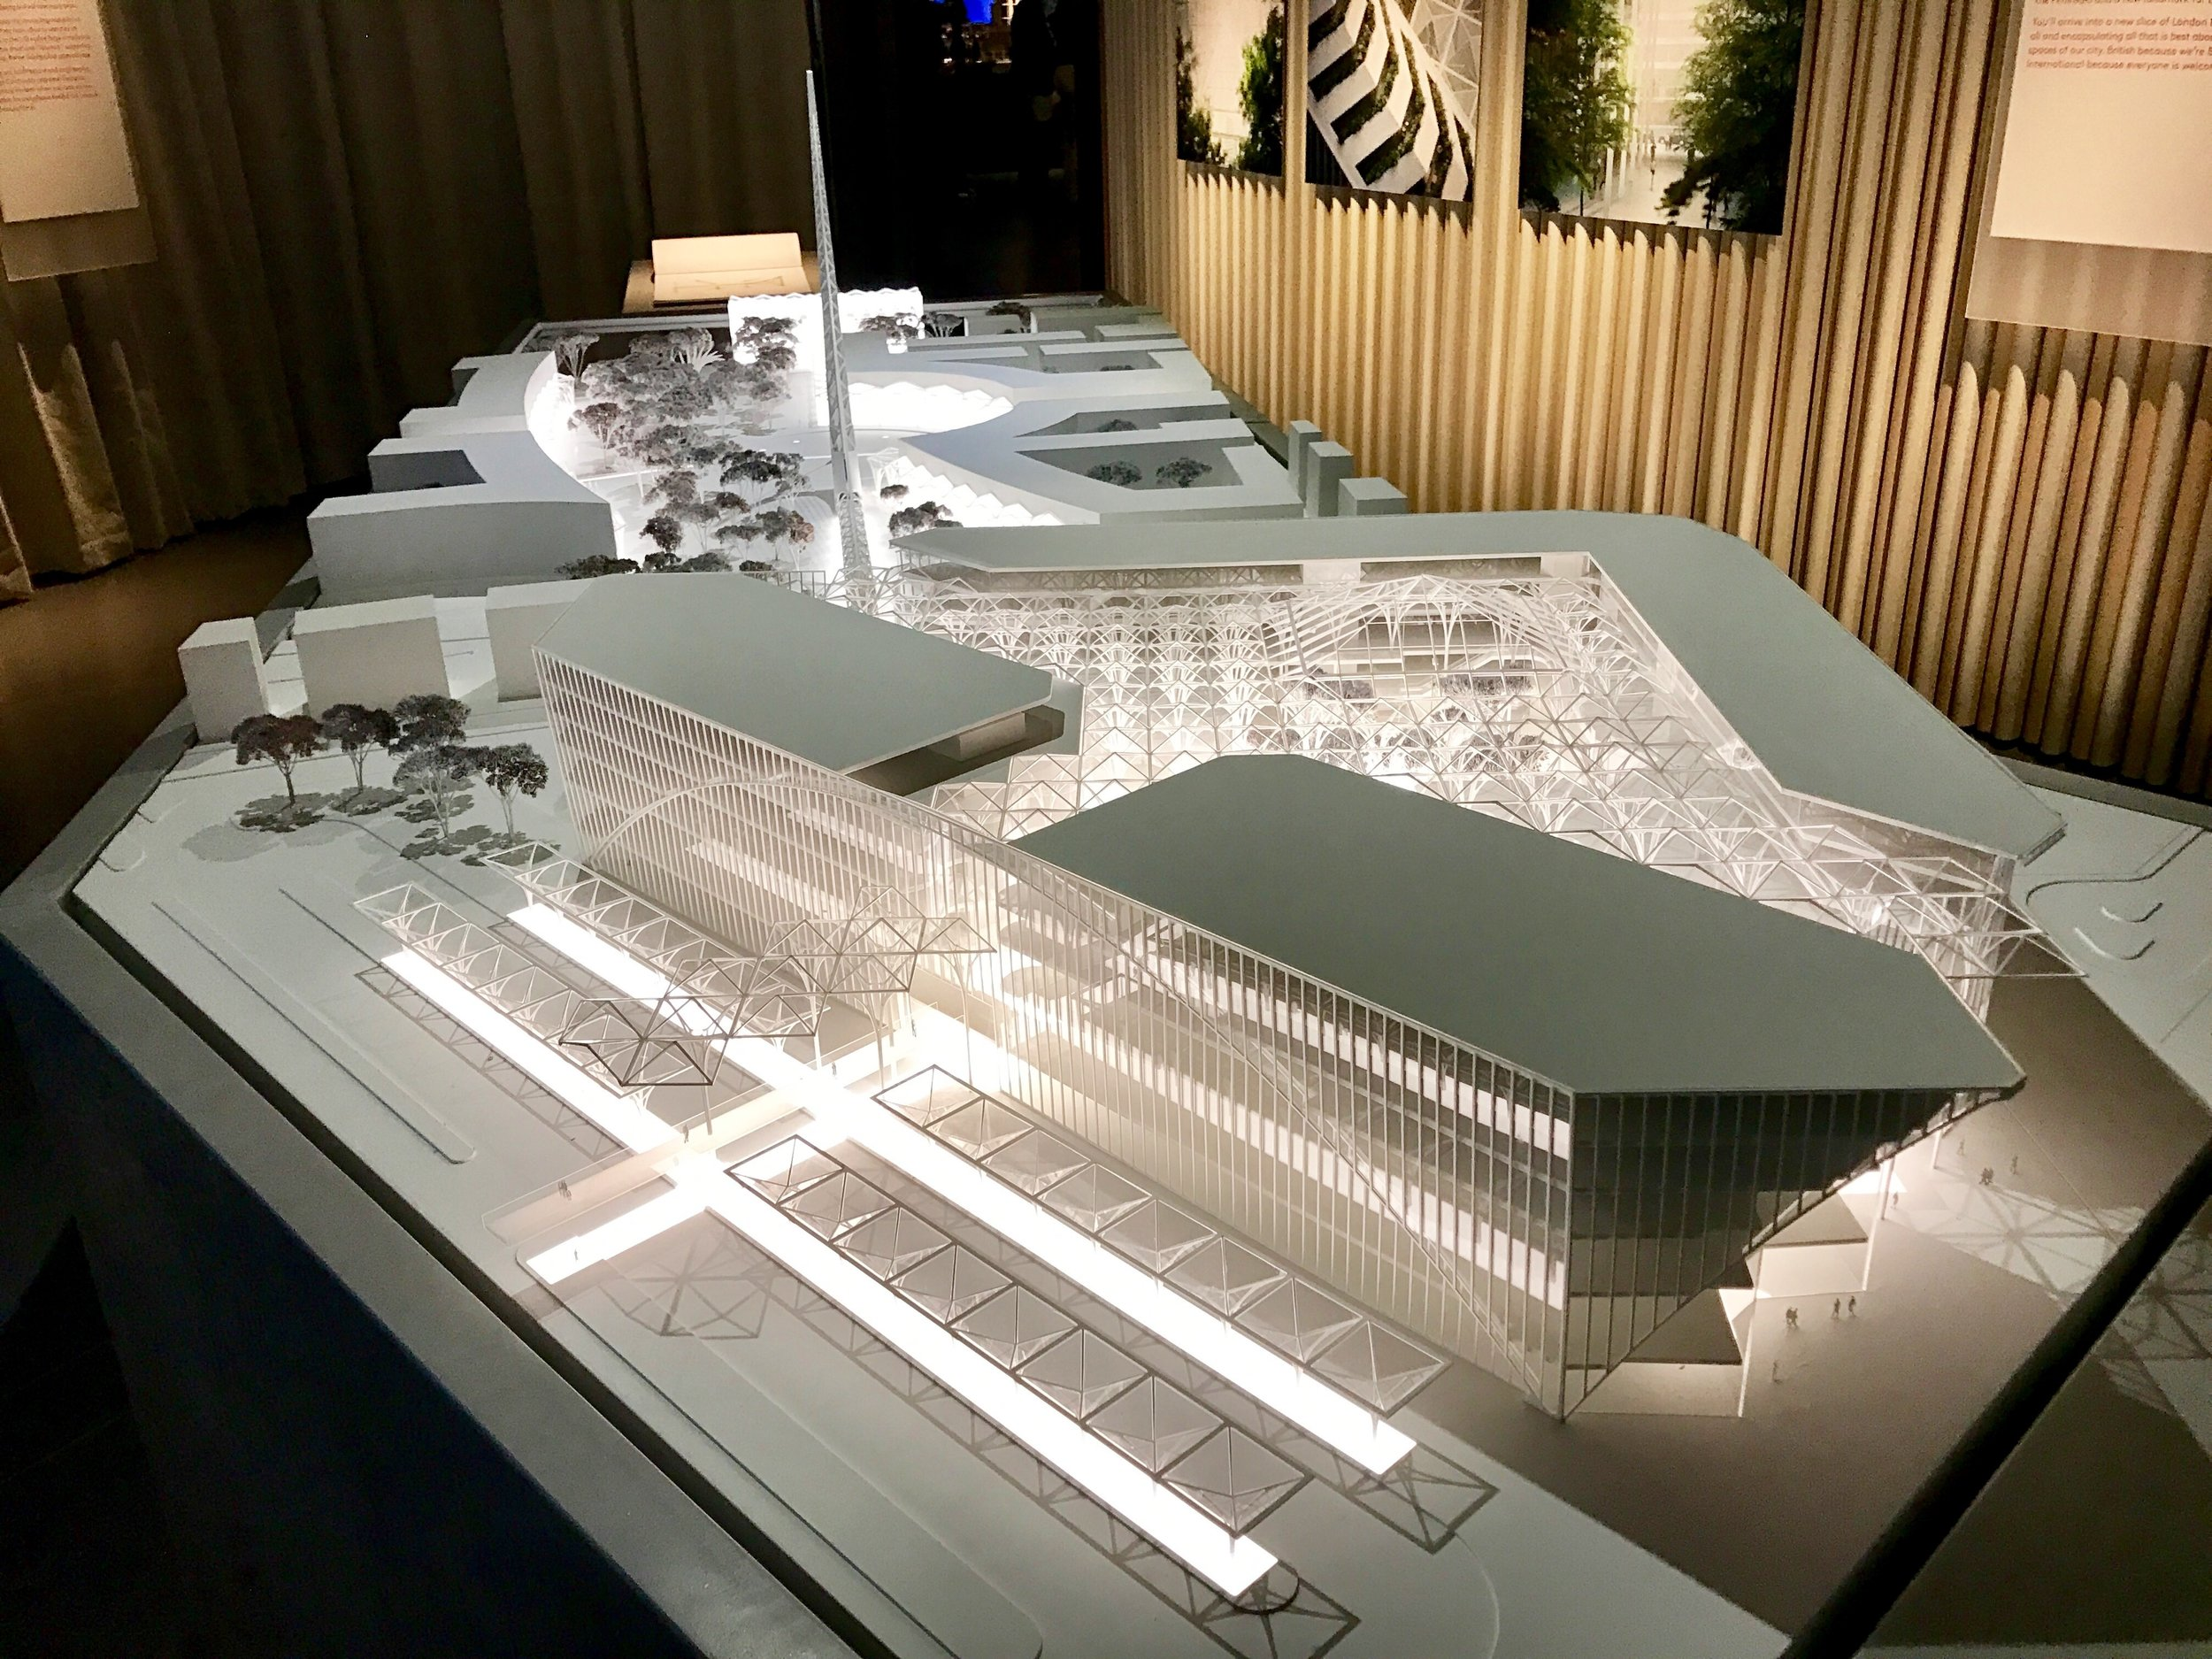 Large scale model of Calatrava's Peninsula Place proposals, with top of towers sliced off [greenpen.london]